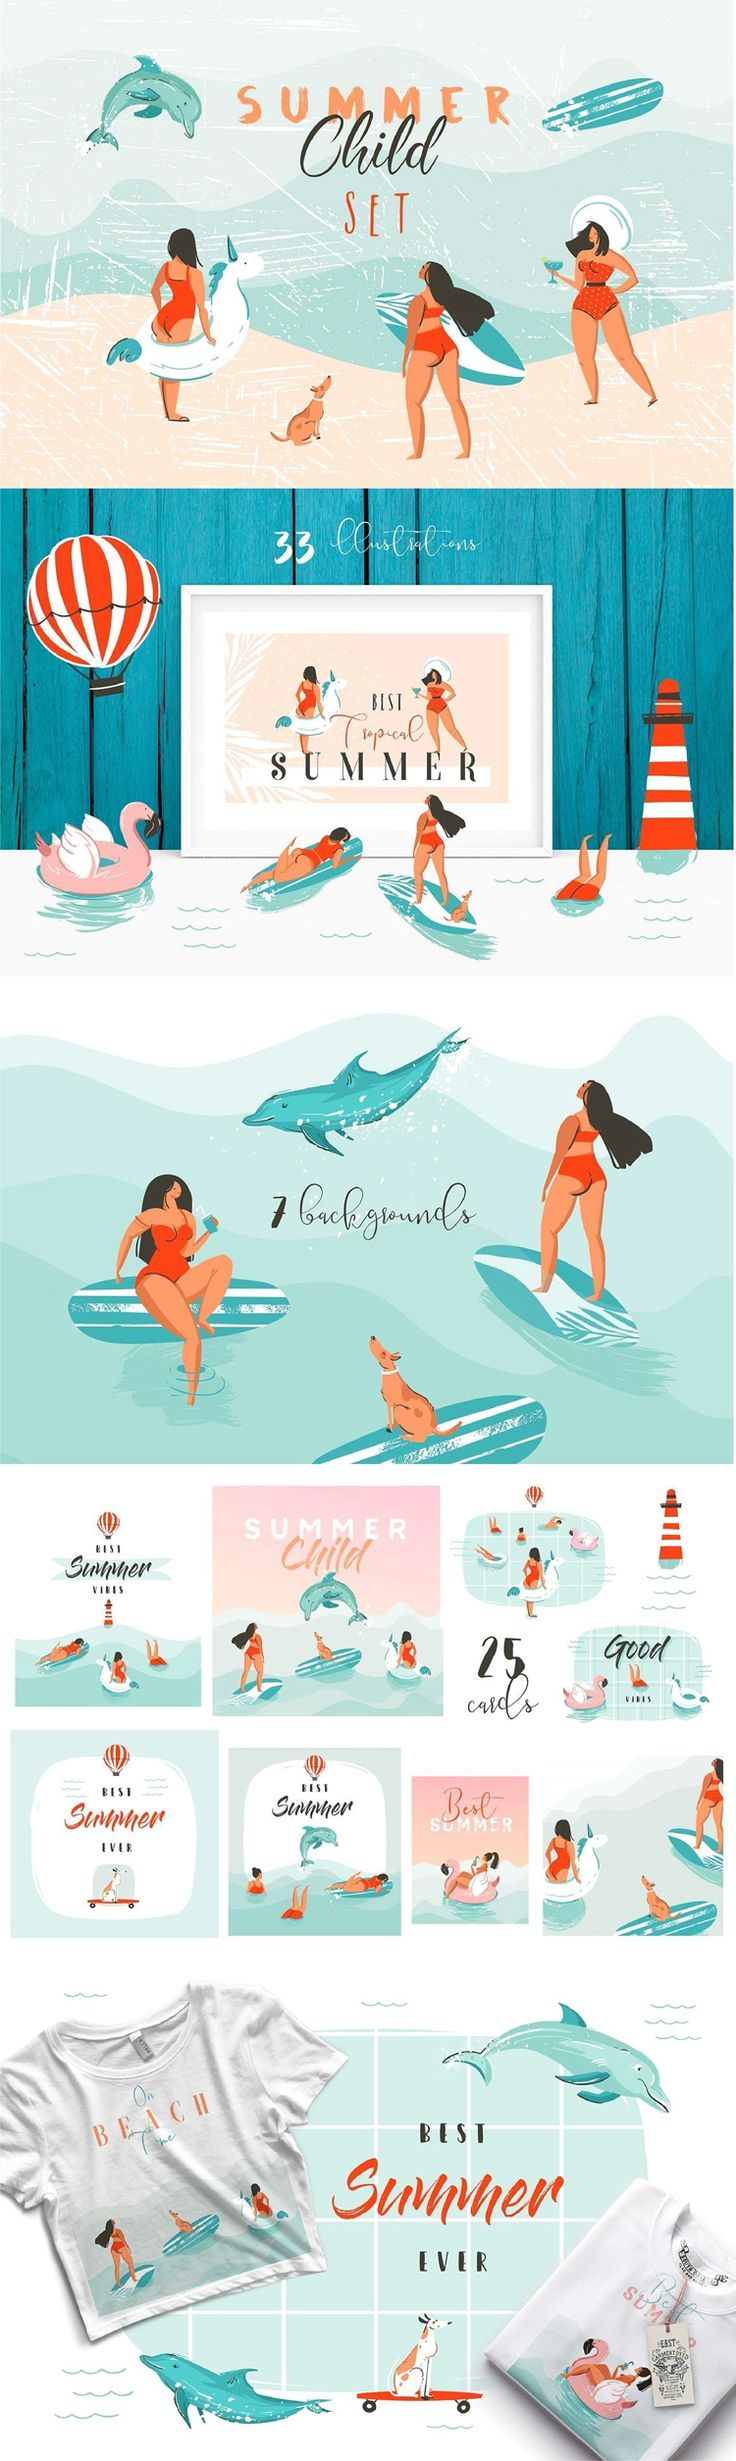 Hand drawn summer time set with  18 seamless patterns in EPS,JPG and PNG files. 33 cute simple graphic illustrations of beach swimming girls and boys,surfers,girls on skateboards,dogs,unicorn and pink flamingo float buoy rings and dolphins in EPS,JPG and PNG files. 25 different cards with summer typography quotes in EPS,JPG and PNG files. 7 backgrounds in EPS,JPG and PNG files. and BONUS Weekly planner in EPS and JPG files. #summer #illustration #sea #tshirtdesign #tshirt